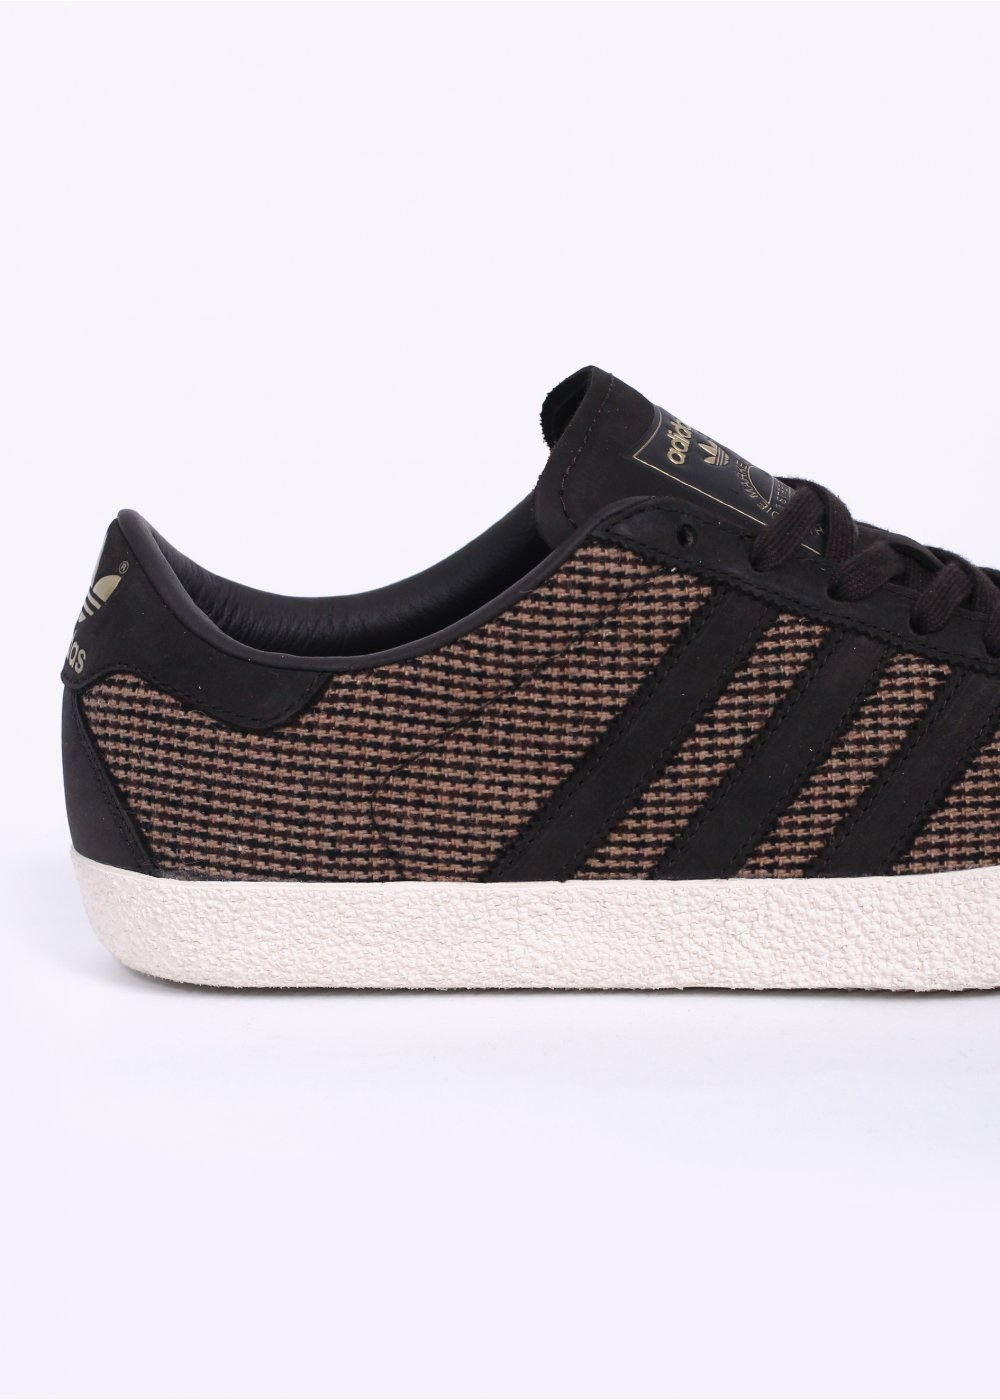 adidas 70s gazelle tweed grey